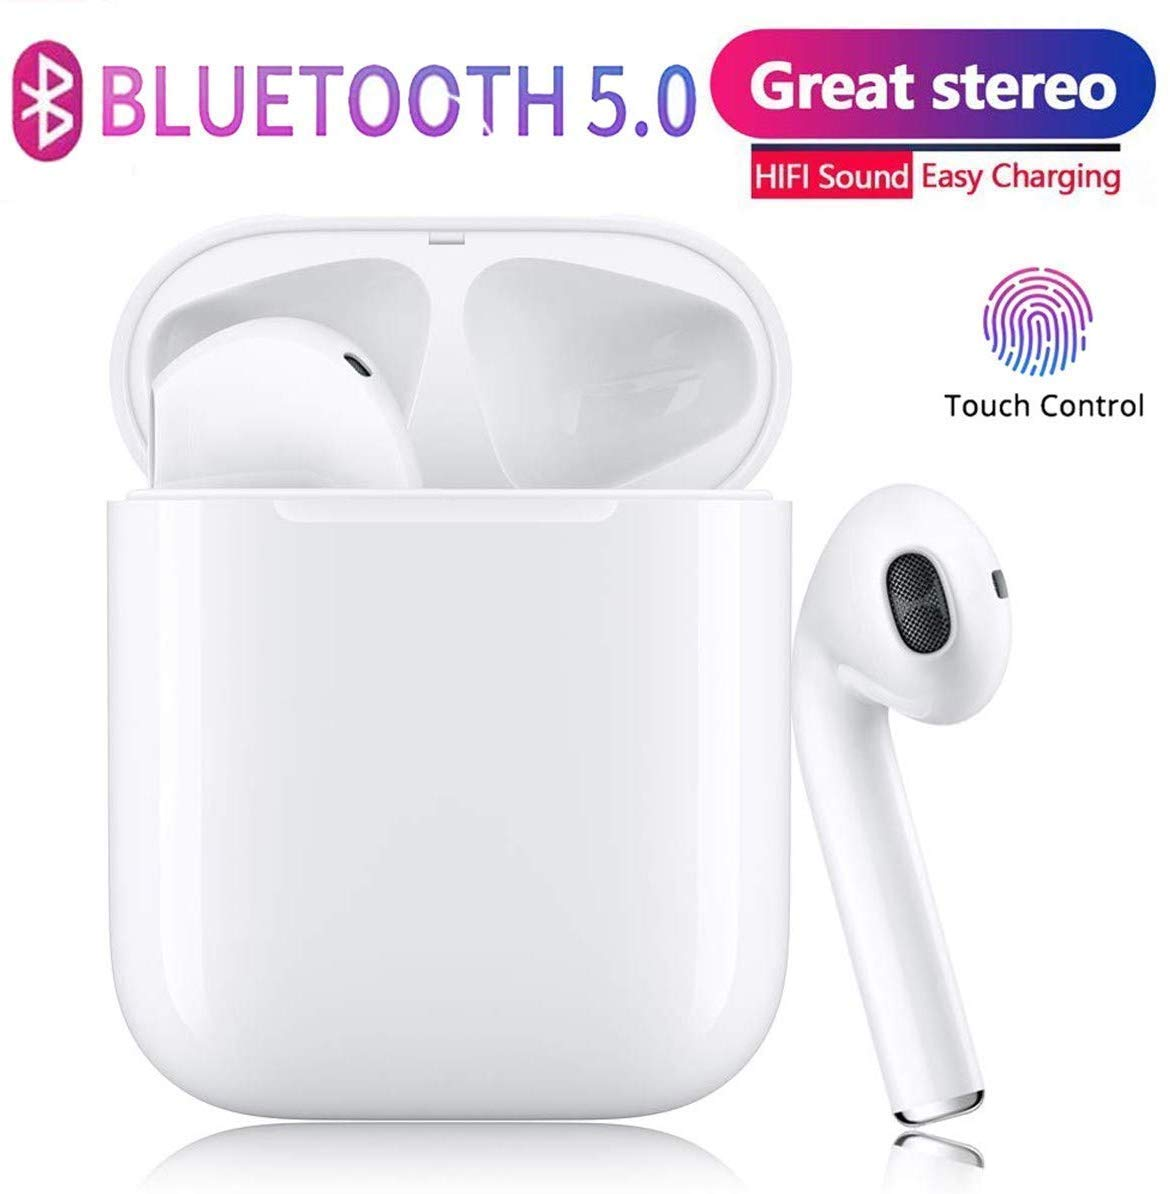 Wireless earbuds Bluetooth 5.0 Headphones 2019 Latest intelligent noise reduction support fast charging pop-up automatic pairing White Bluetooth